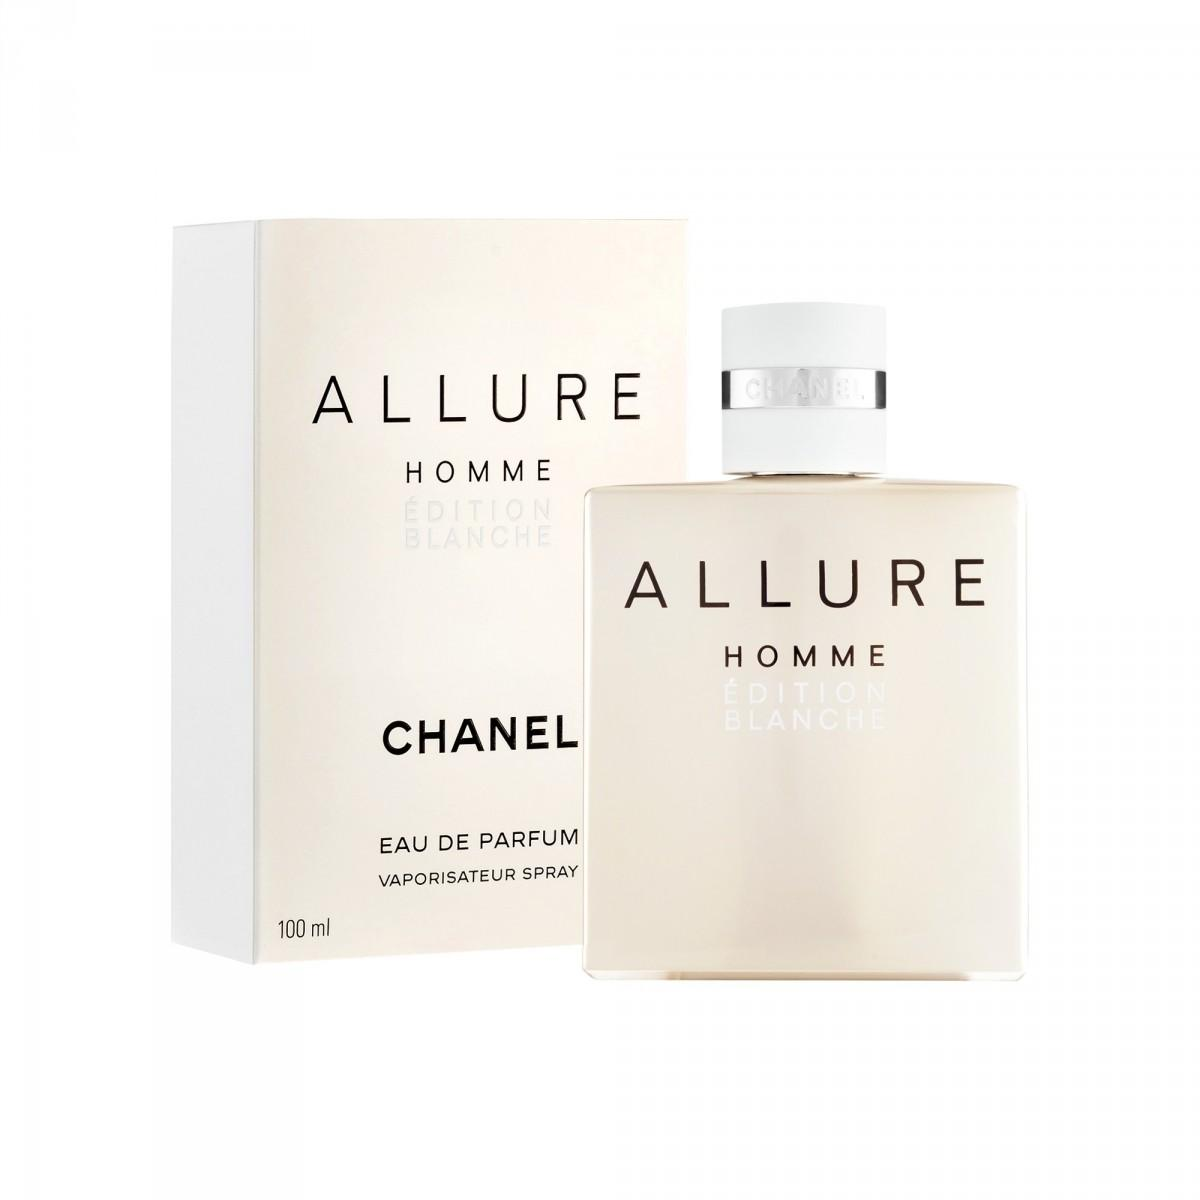 Allure Homme Edition Blanche Aelia Duty Free